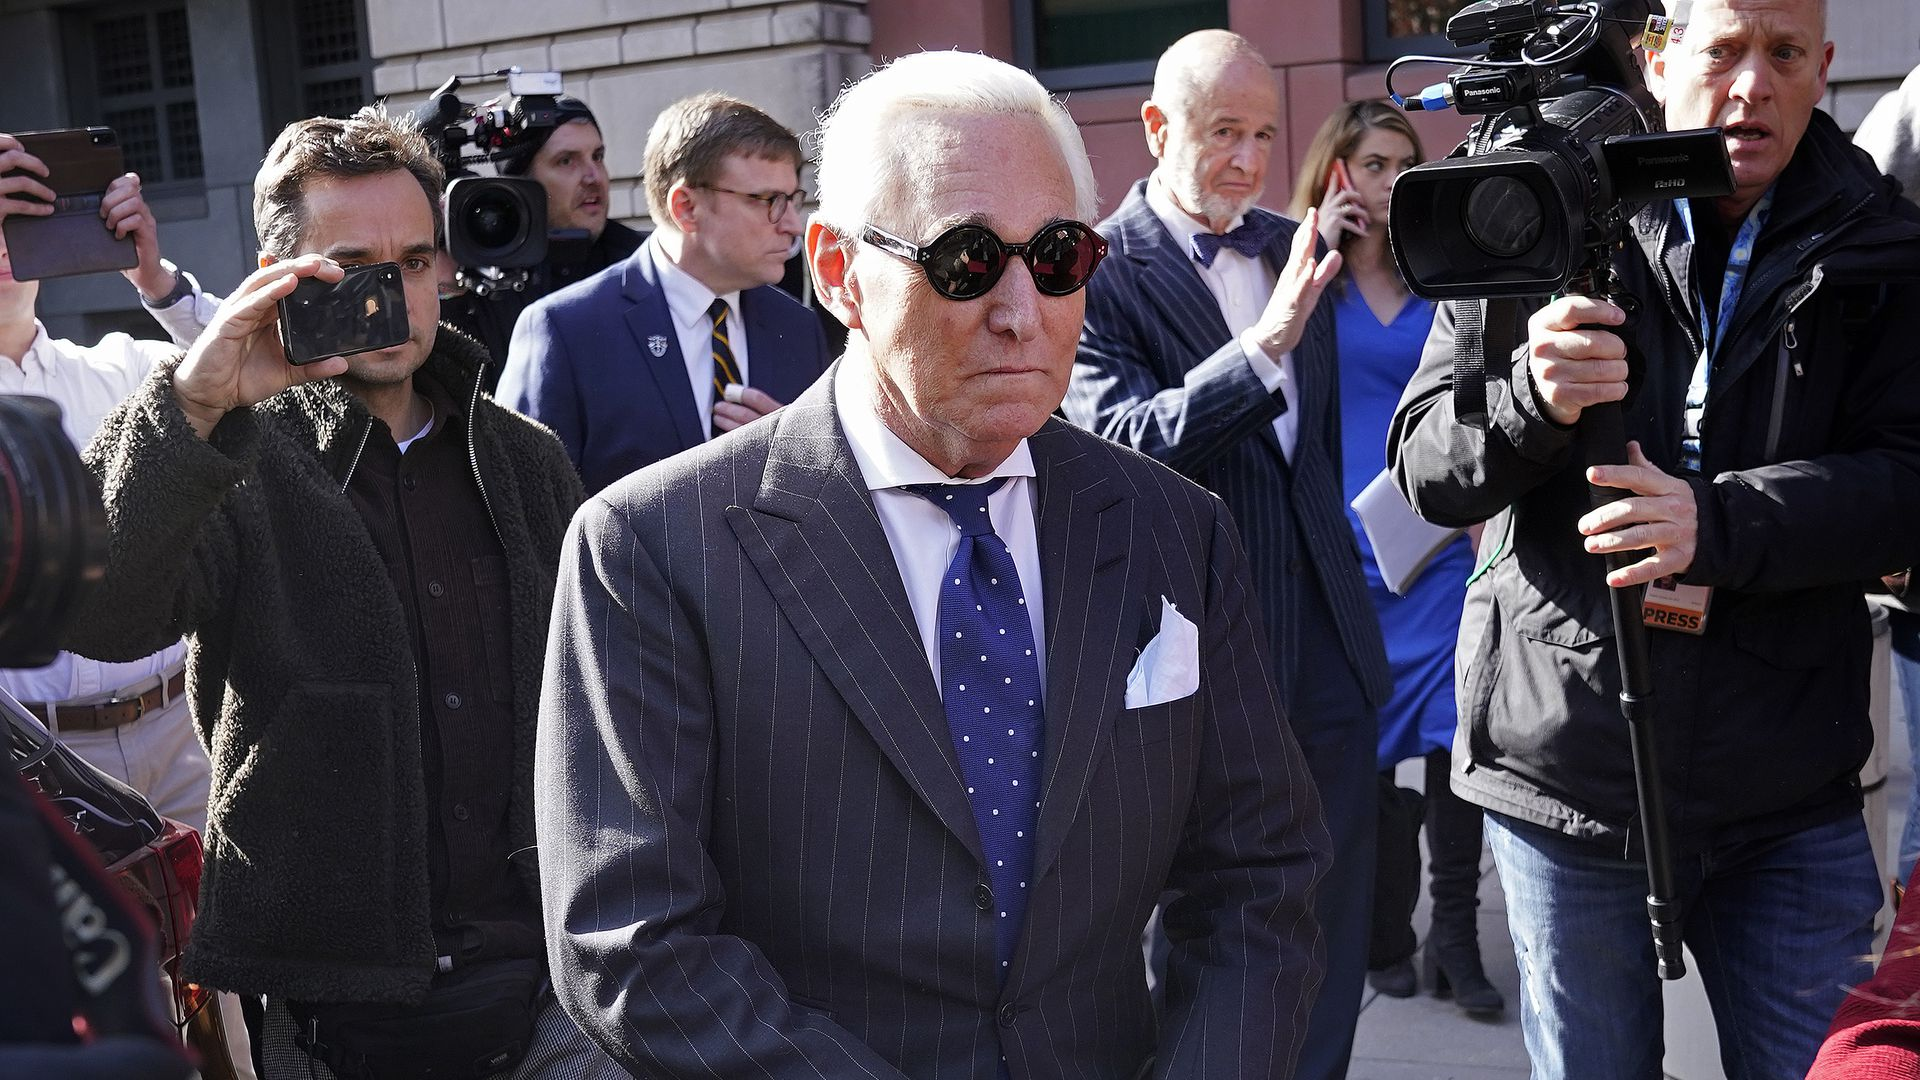 Trump forces offer president clashing advice on Roger Stone pardon